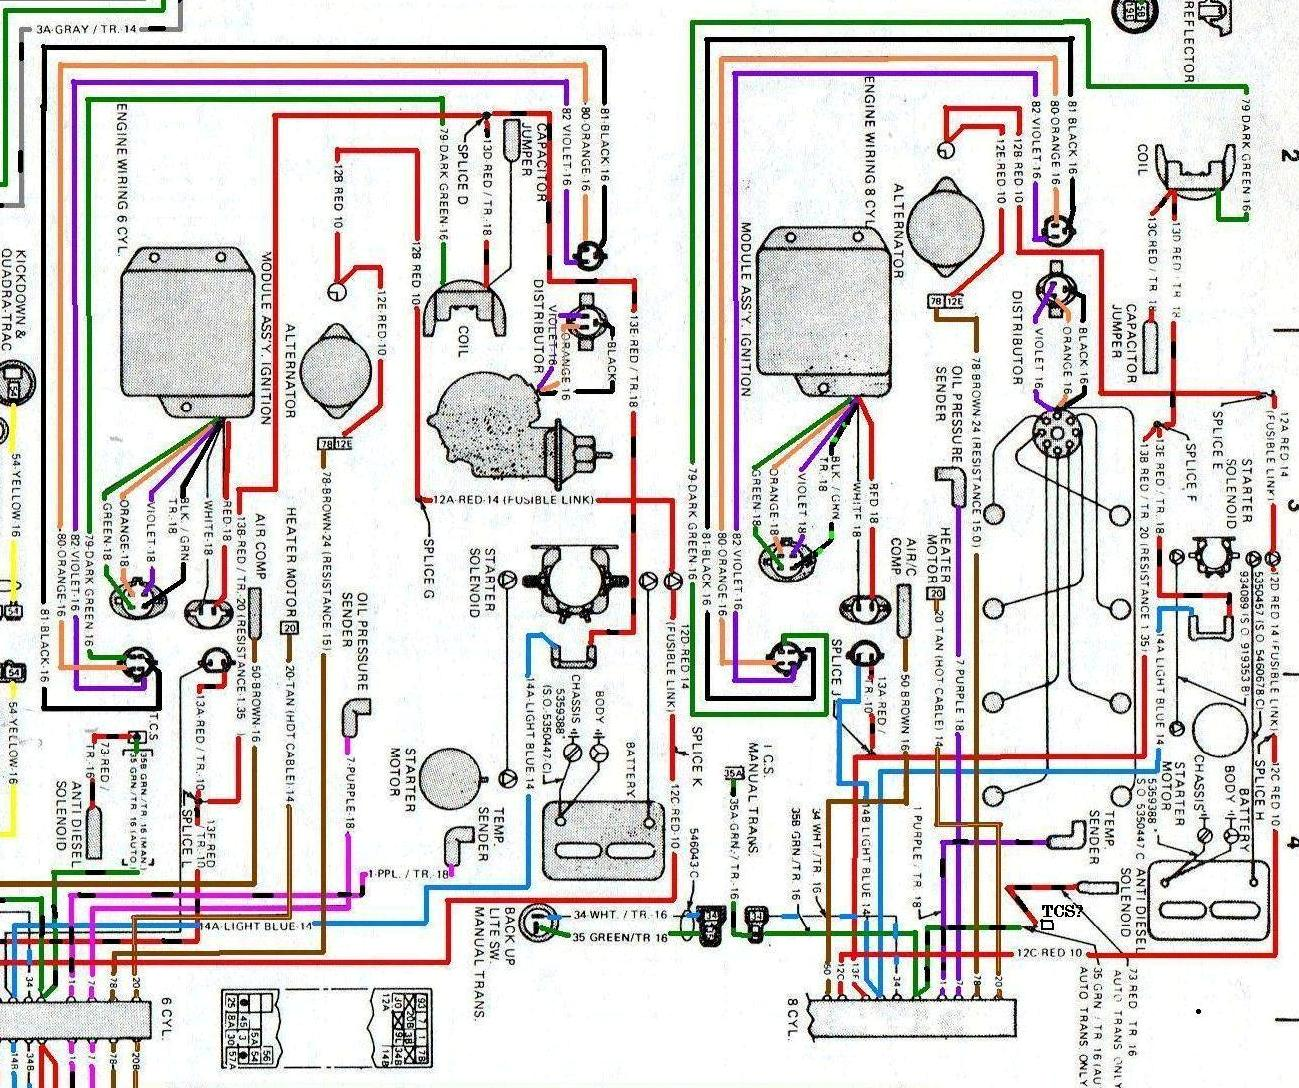 Wiring Harness For 1979 Jeep Cj7 : I am having trouble getting my starter to engage have